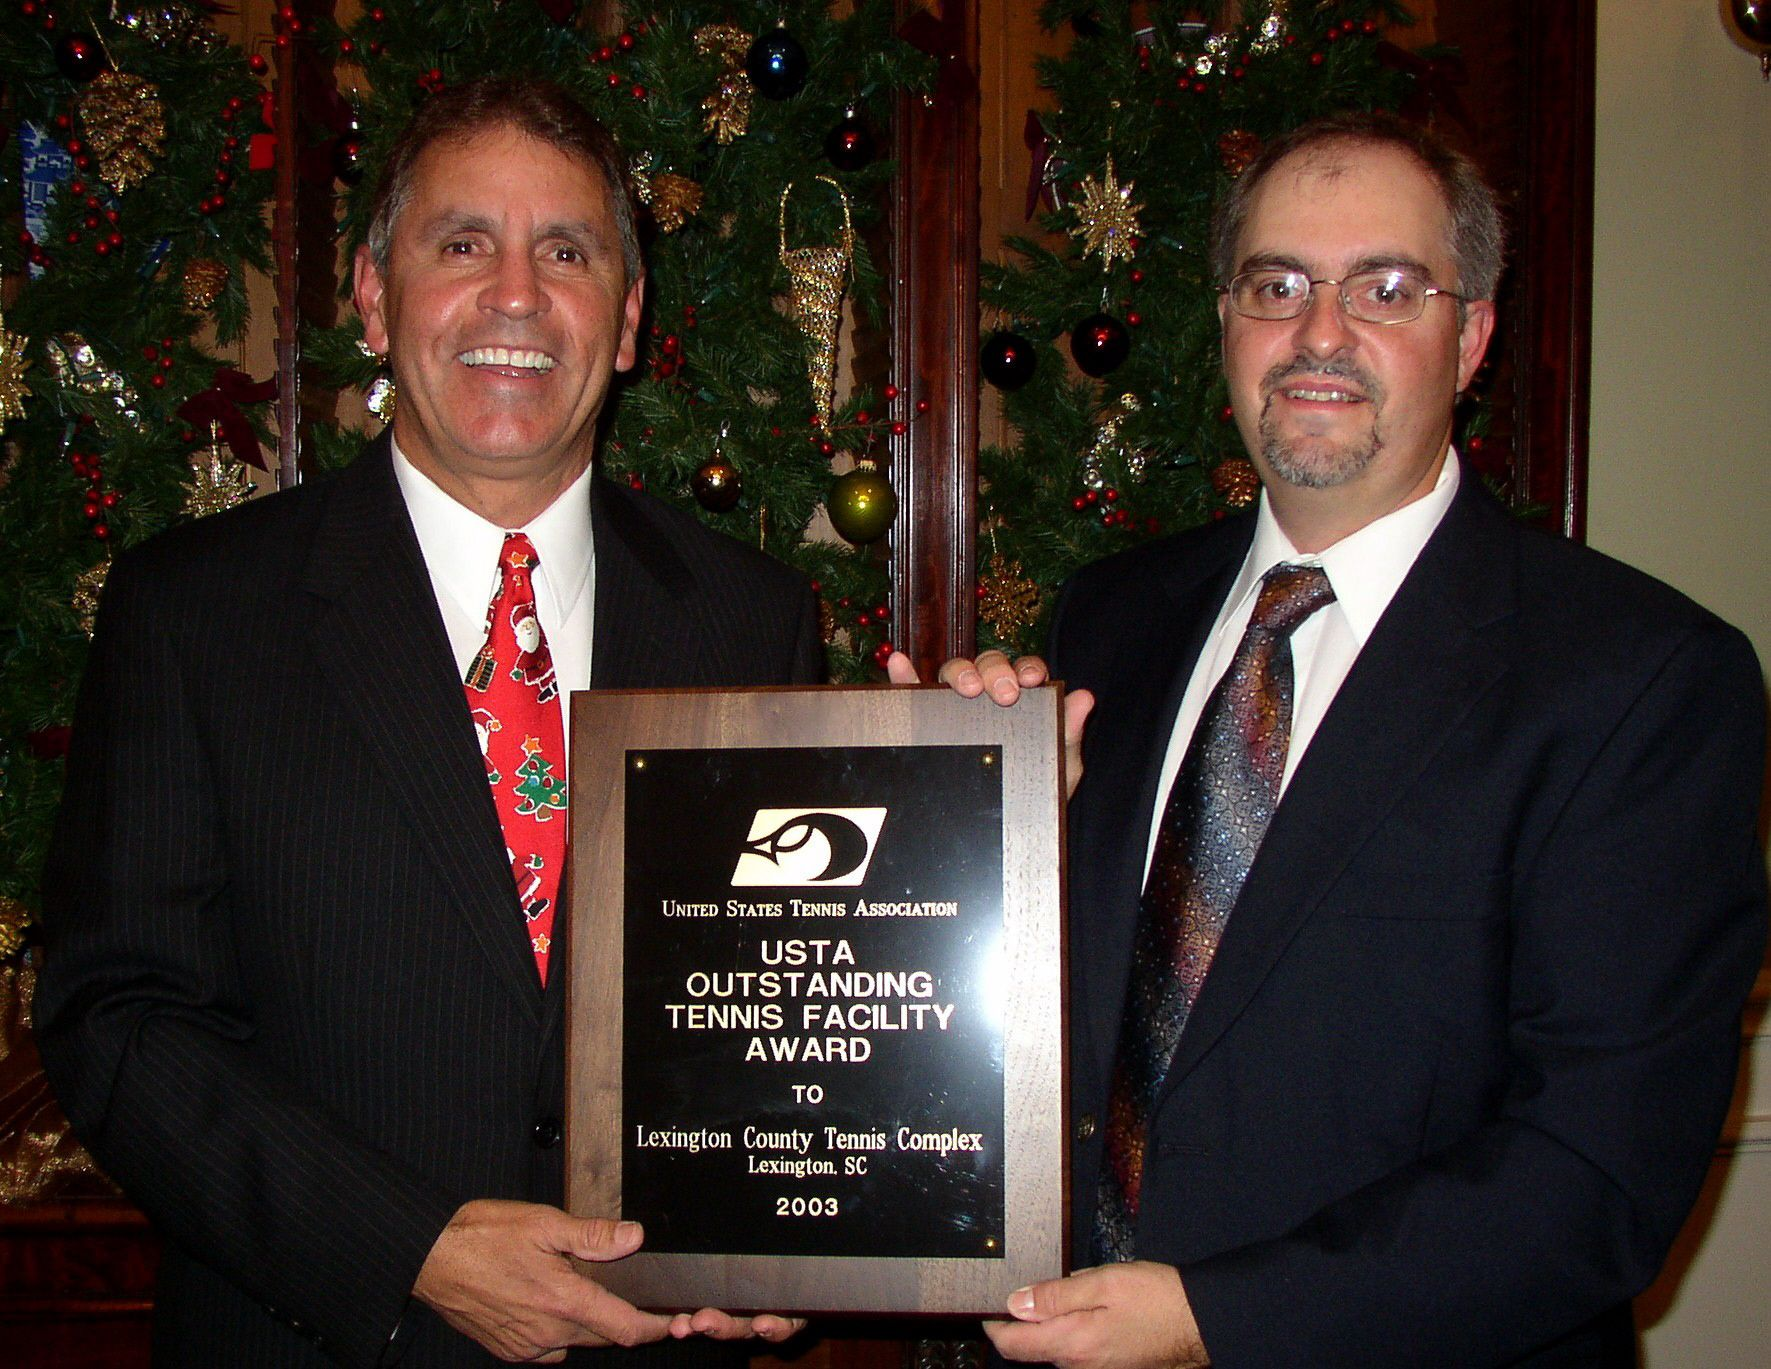 Jorge Andrew and Joel Corley accepting the National Facility of the Year Award